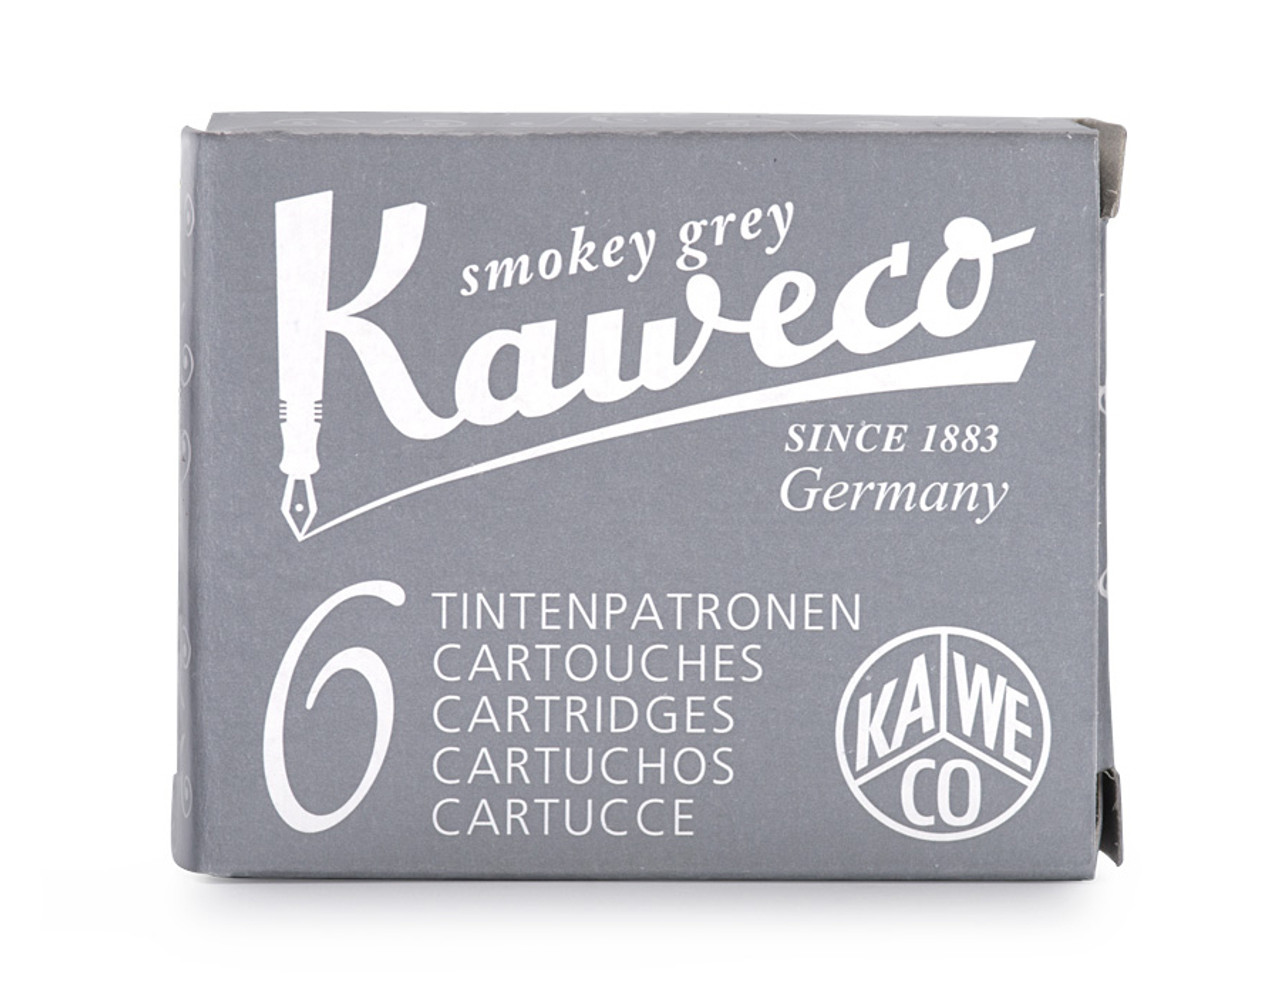 Kaweco ink cartridges, smokey grey